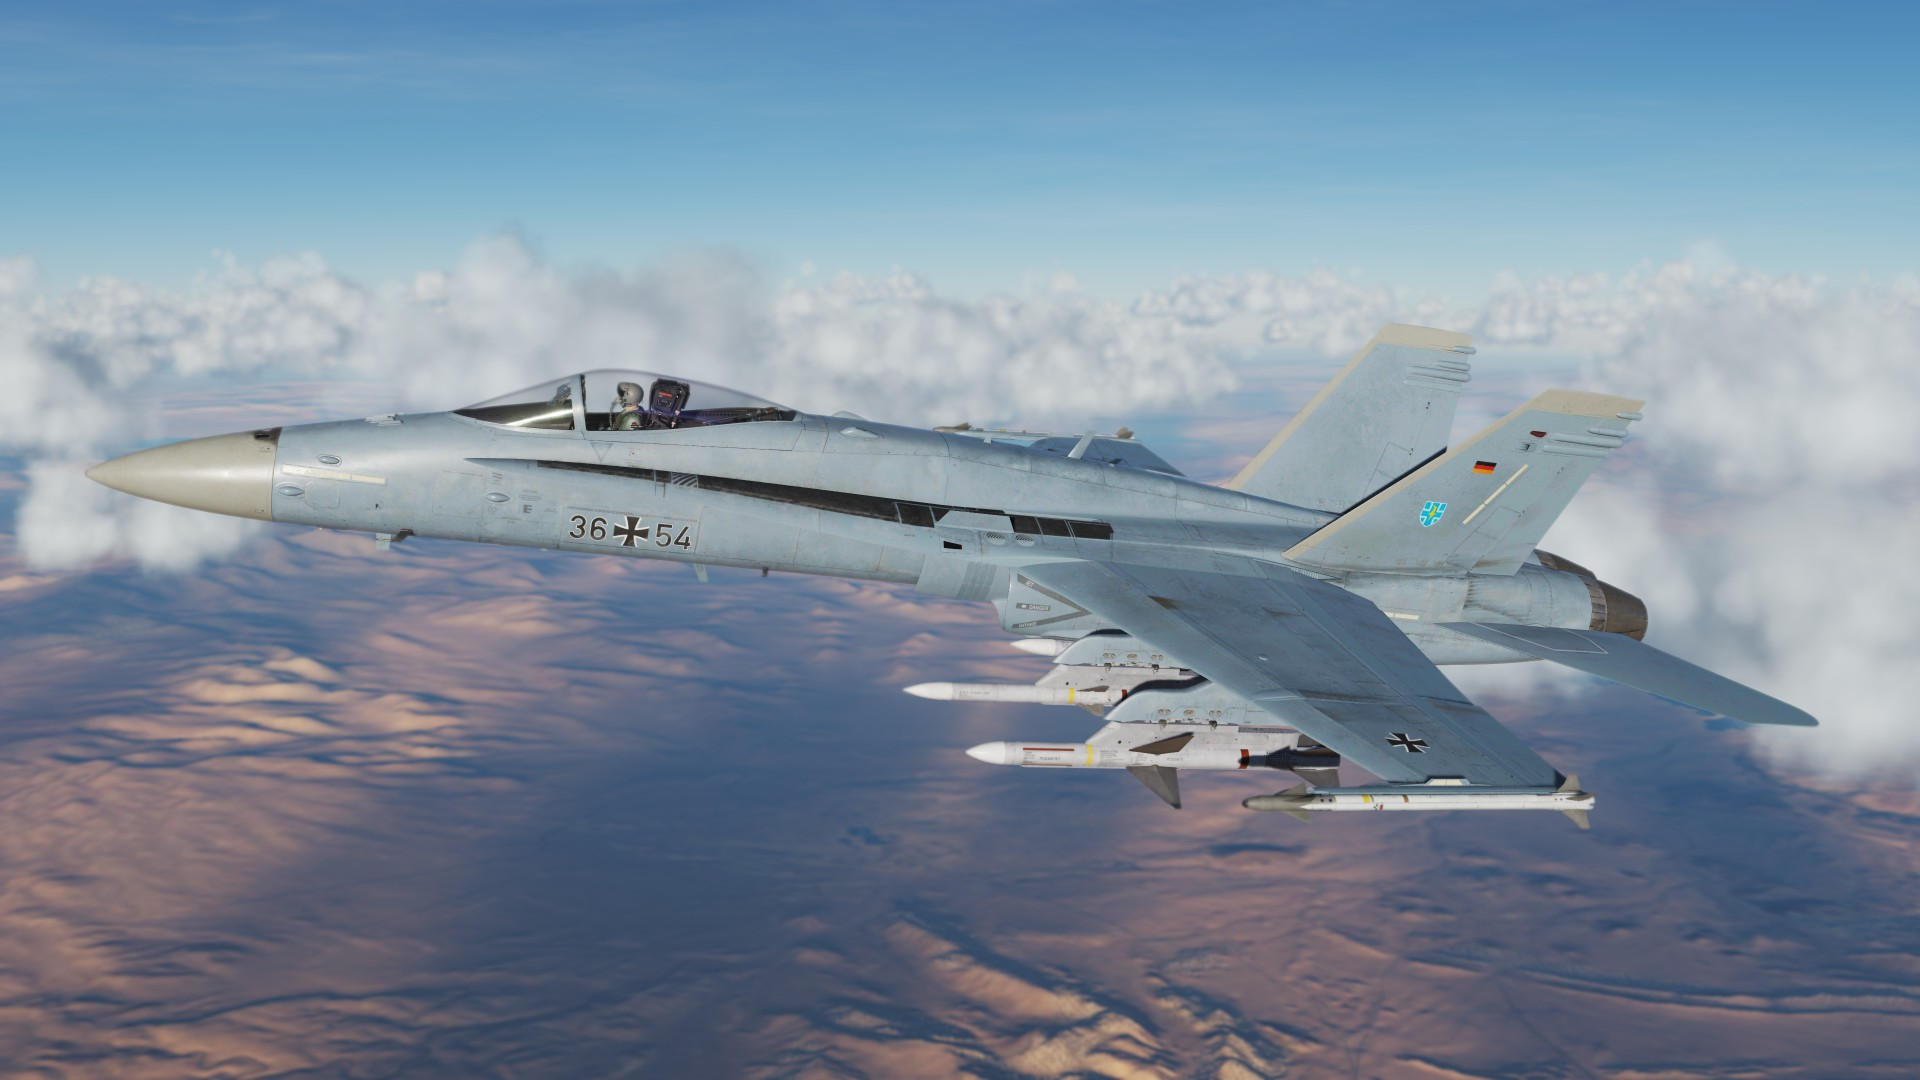 German Air Force F/A-18C Skin TaktLwG 73 Steinhoff (fictional)